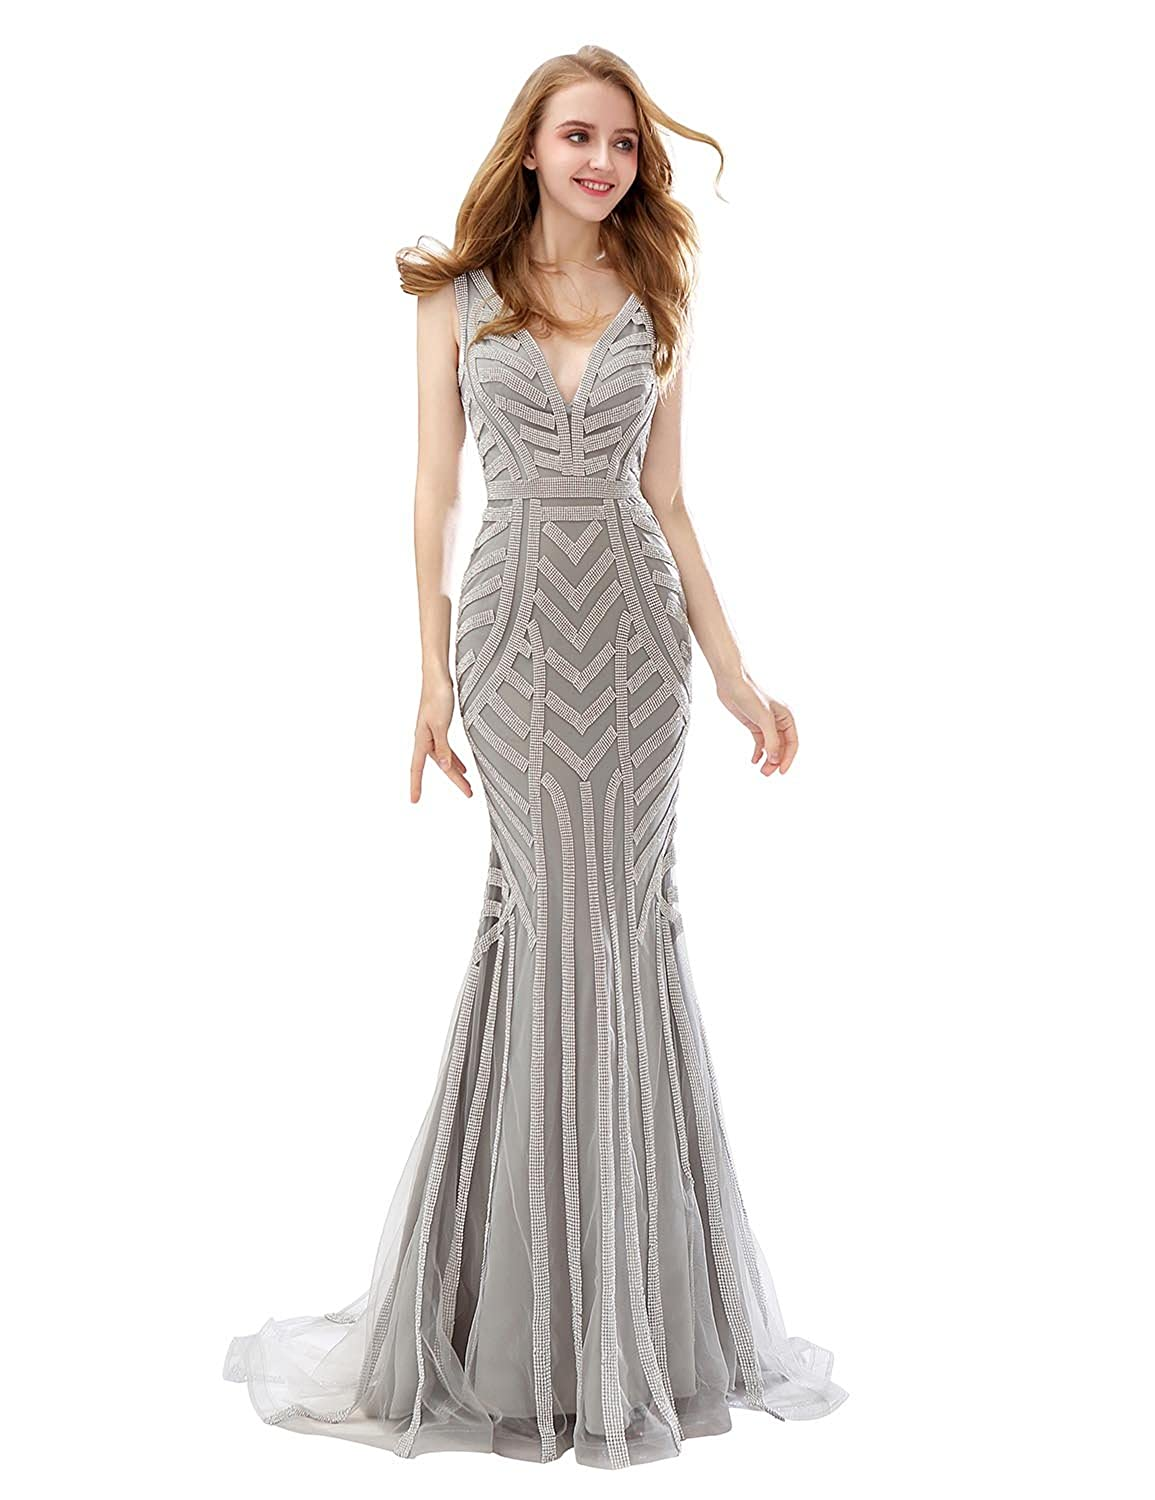 ab79958bf Belle House Women s Long Formal Dresses with Beads Luxury Prom Ball Gown  Evening Dress at Amazon Women s Clothing store